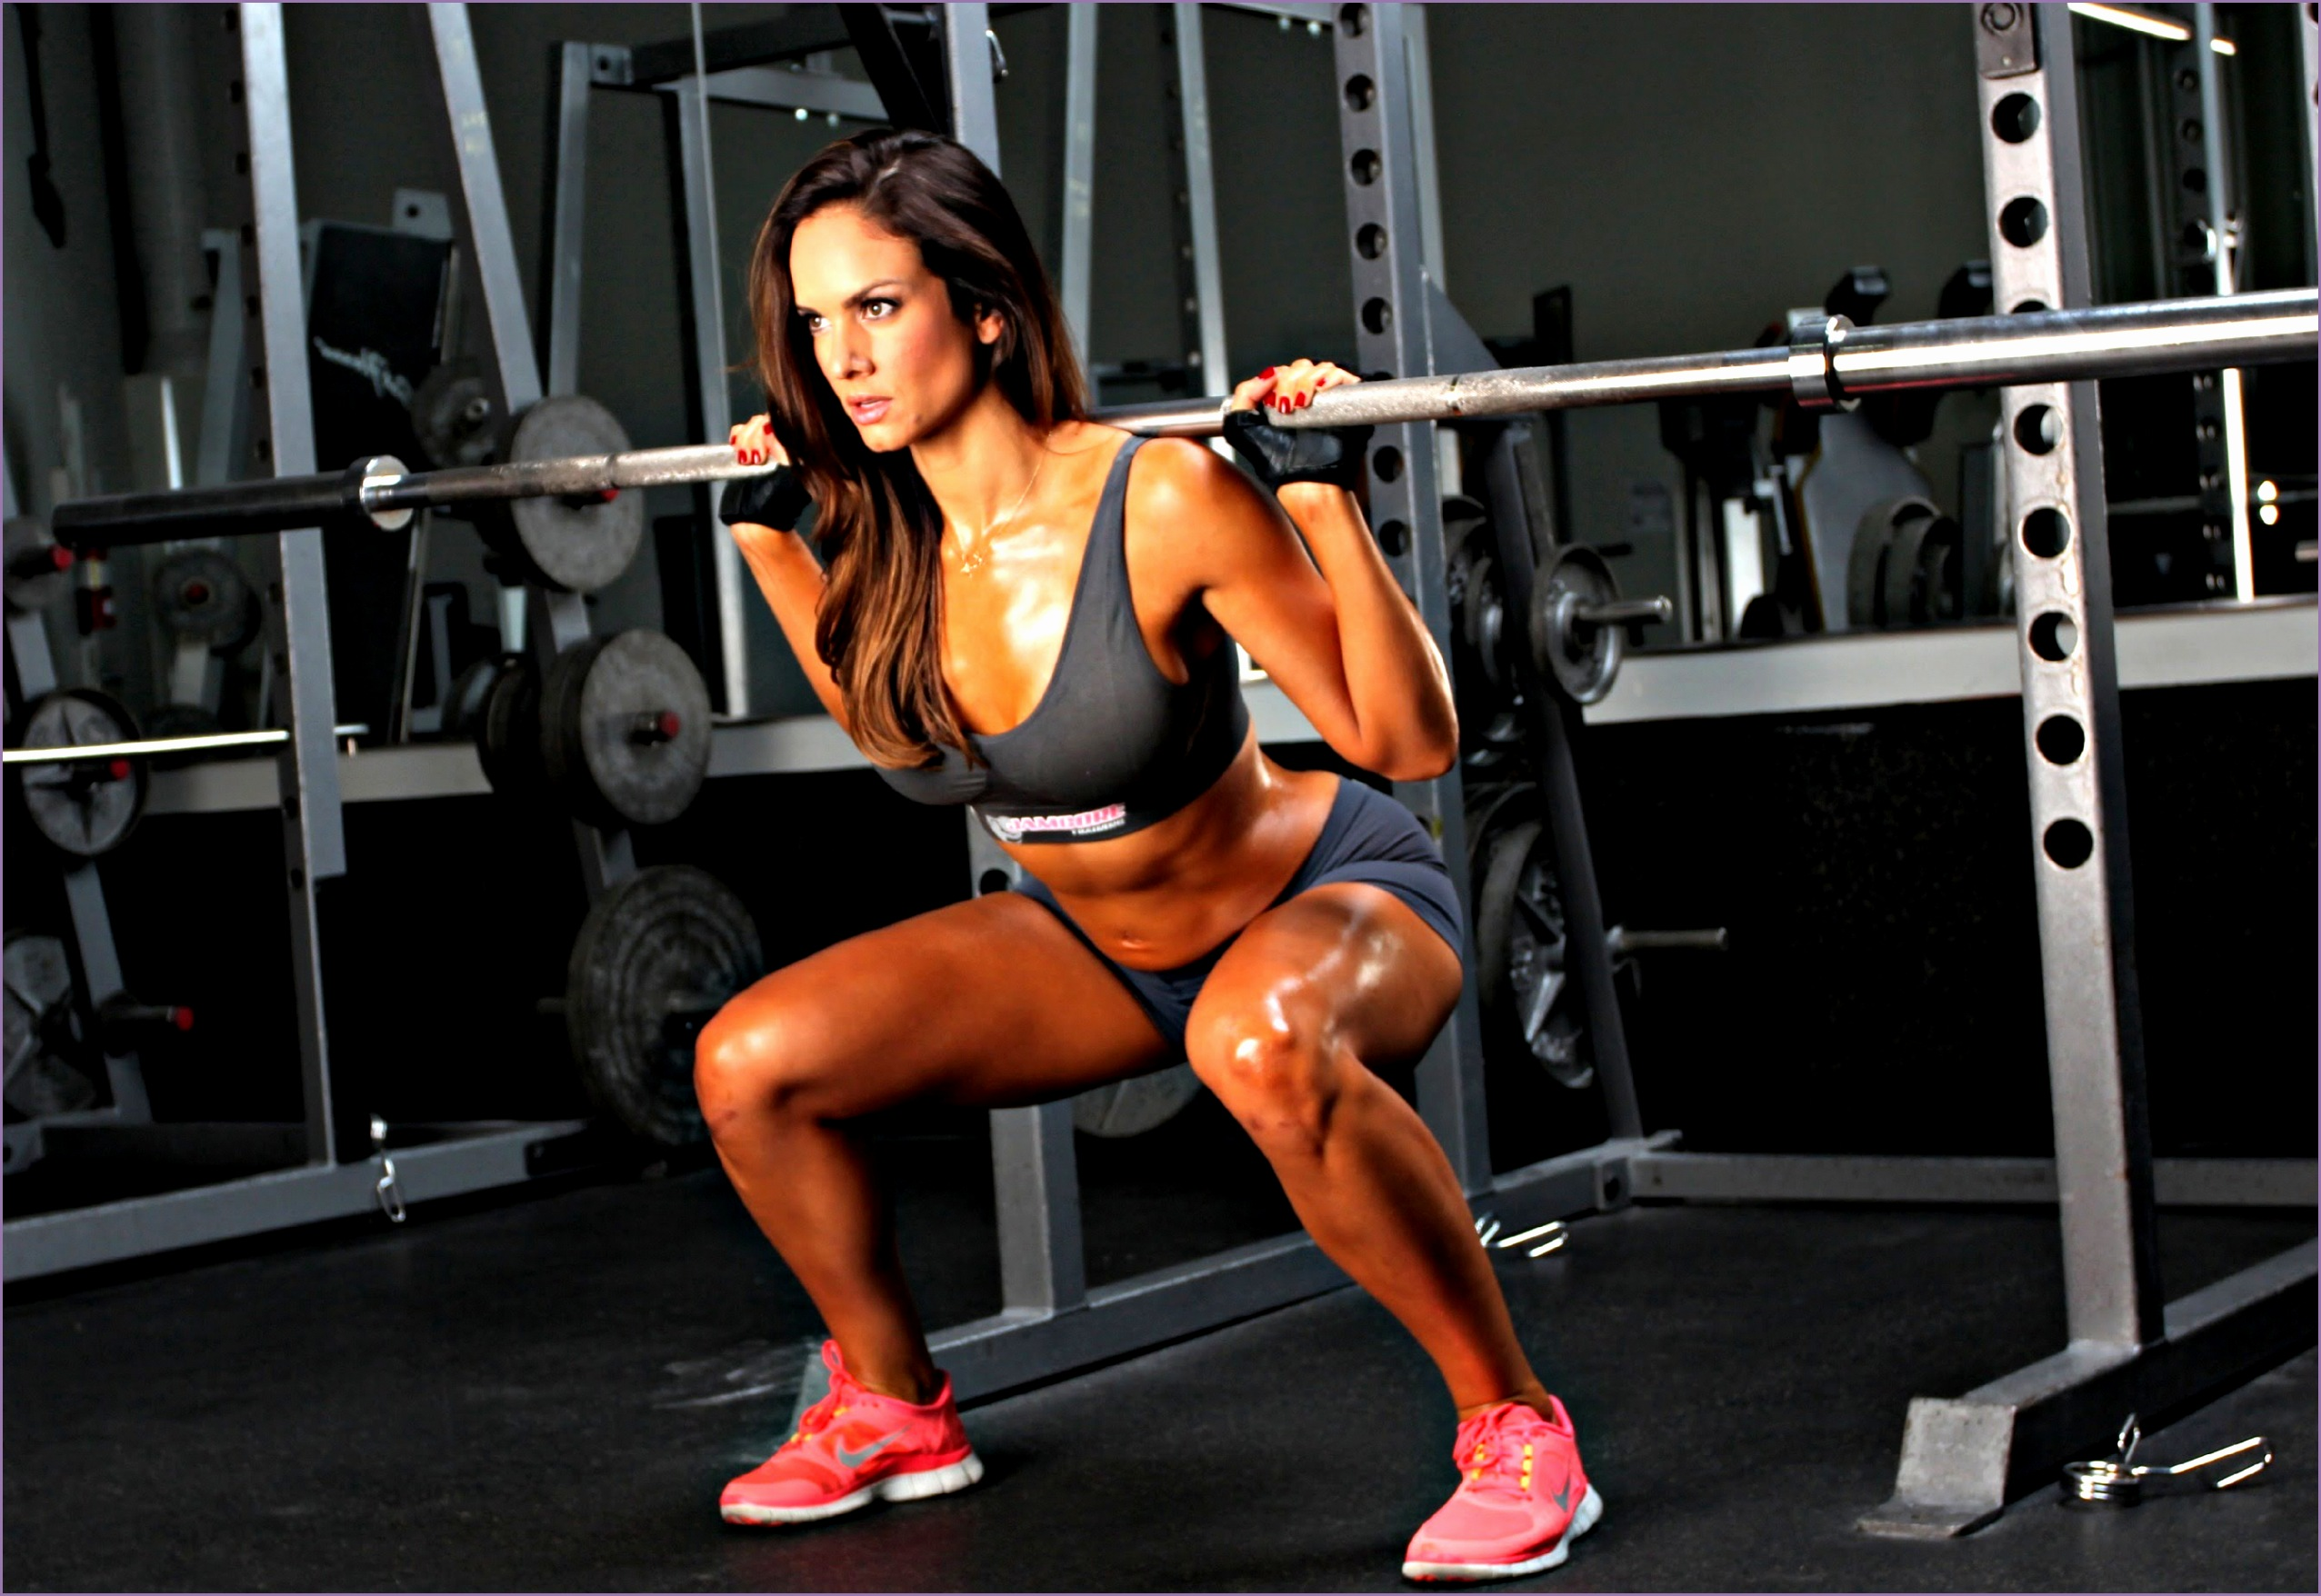 New 2014 Female Workout motivation Deadlift Legs Squat Arms Back Full Body Workout